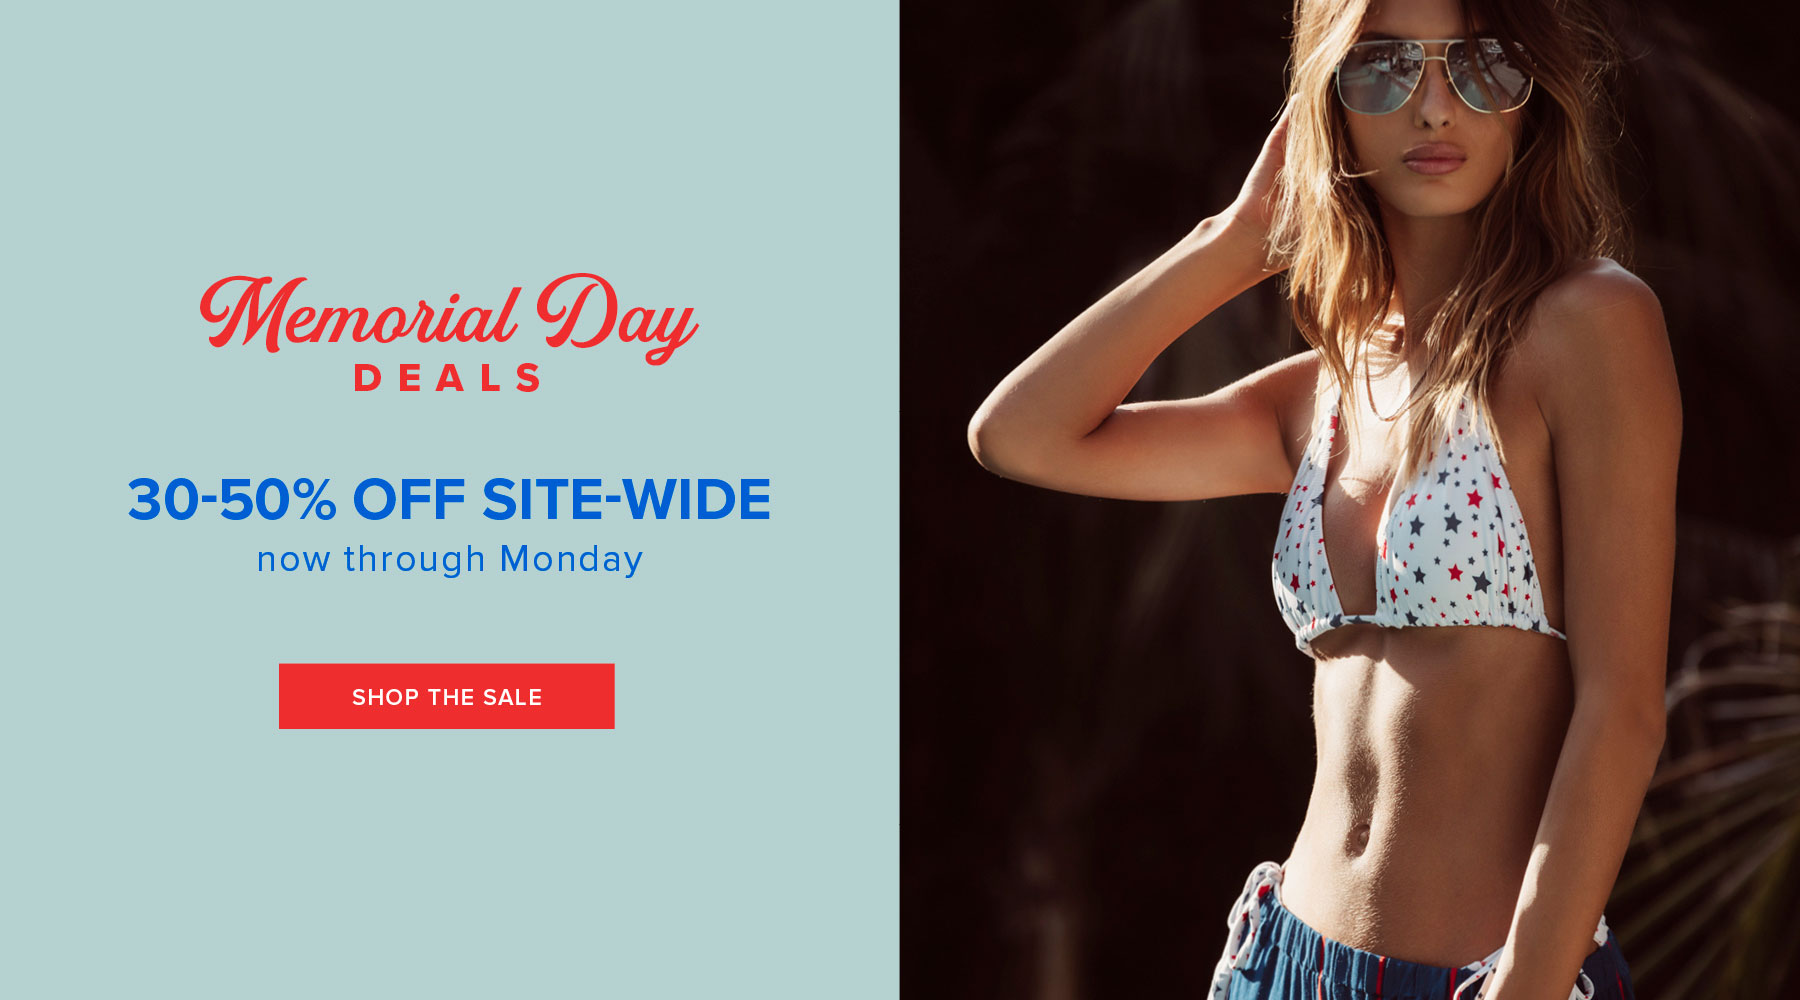 Take 30%-50% off site-wide for Memorial Day! Get ready to soak up the sun & dress for the occasion. See deals inside....